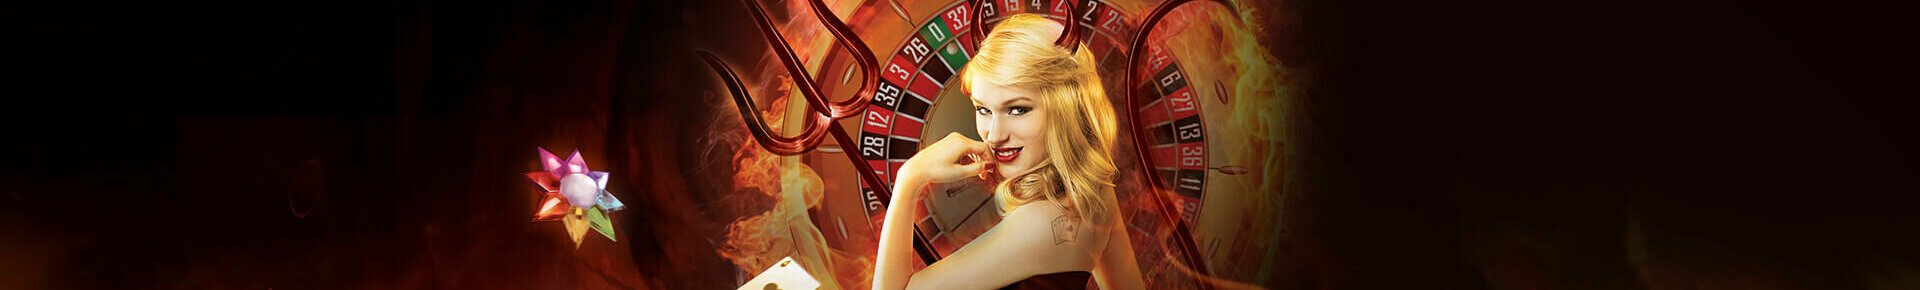 Sin spins casino review UK